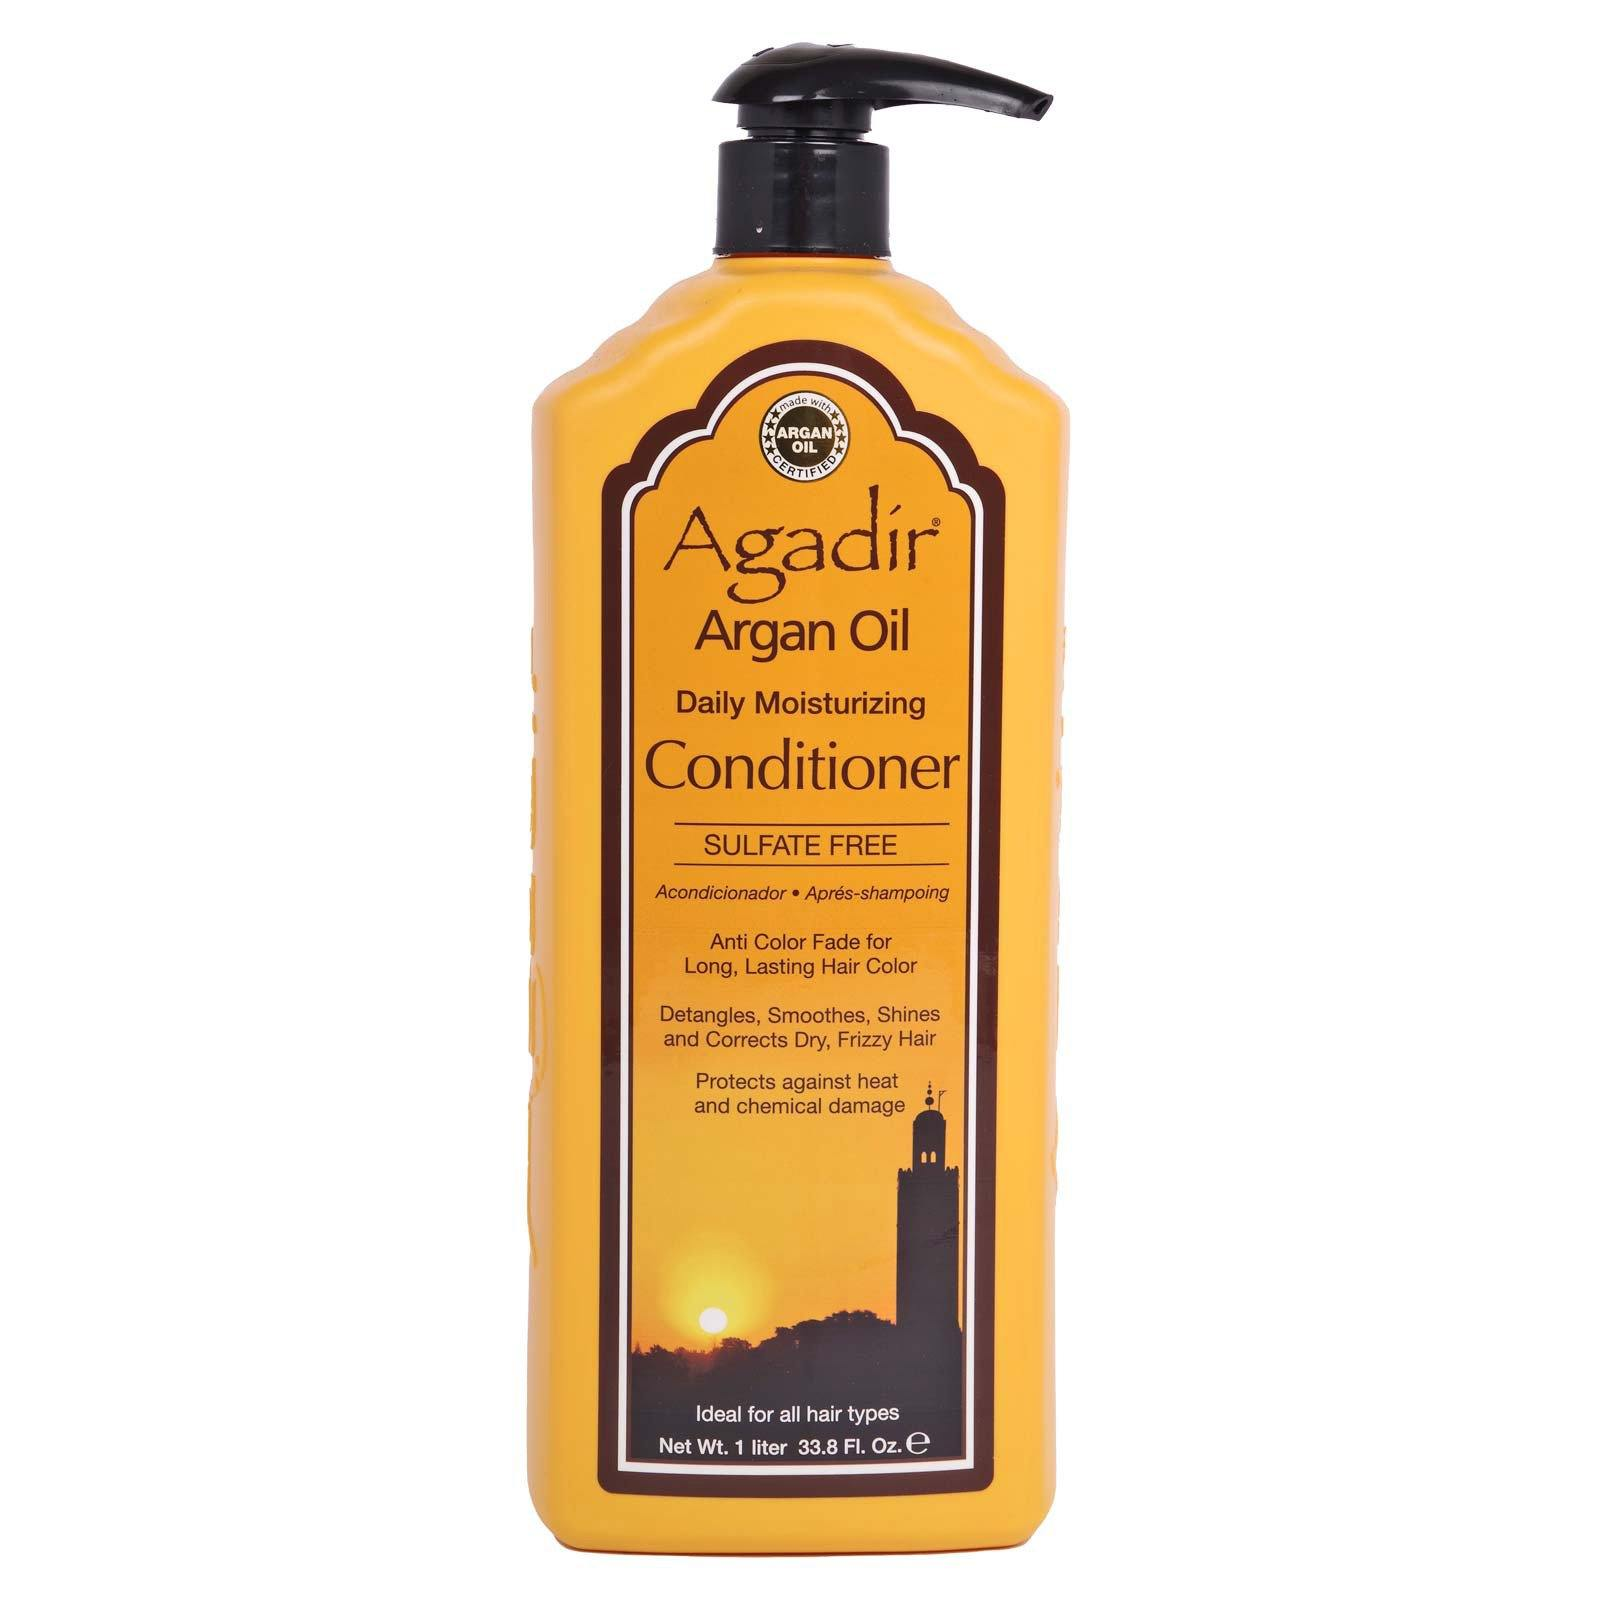 AGADIR ARGAN OIL DAILY MOISTURIZING CONDITIONER, detangles and corrects dry frizzy hair - (33.8oz) (12/cs)